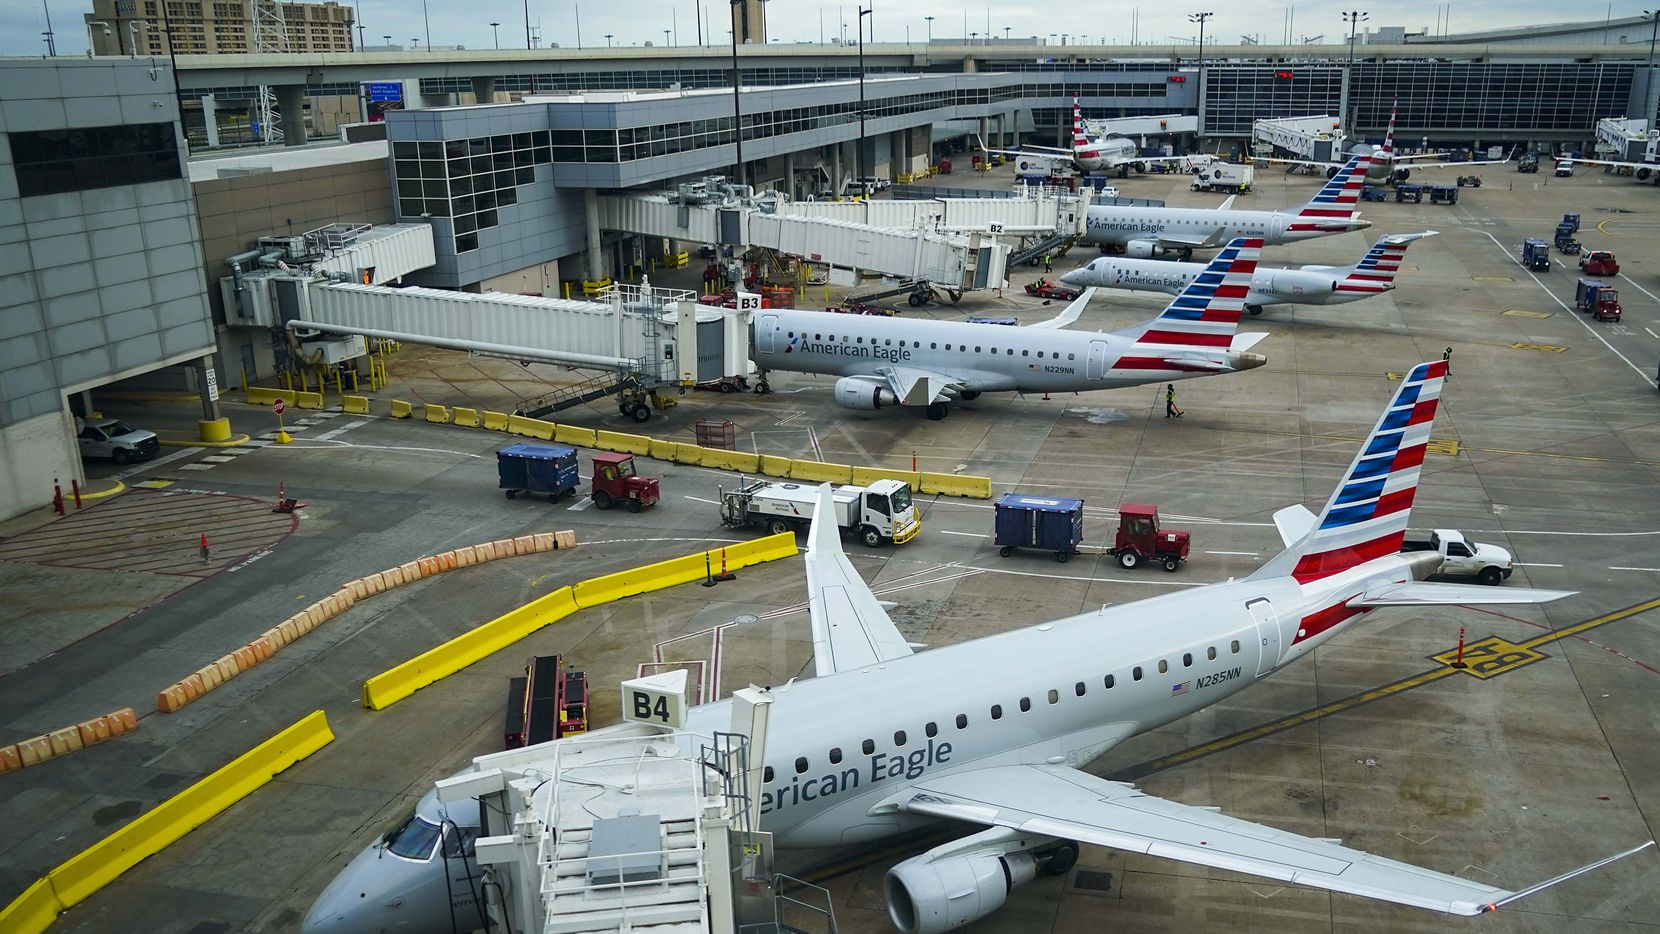 American Eagle planes parked at their gates at  Dallas Fort Worth International (DFW) Airport Terminal B on Friday, March 20, 2020.